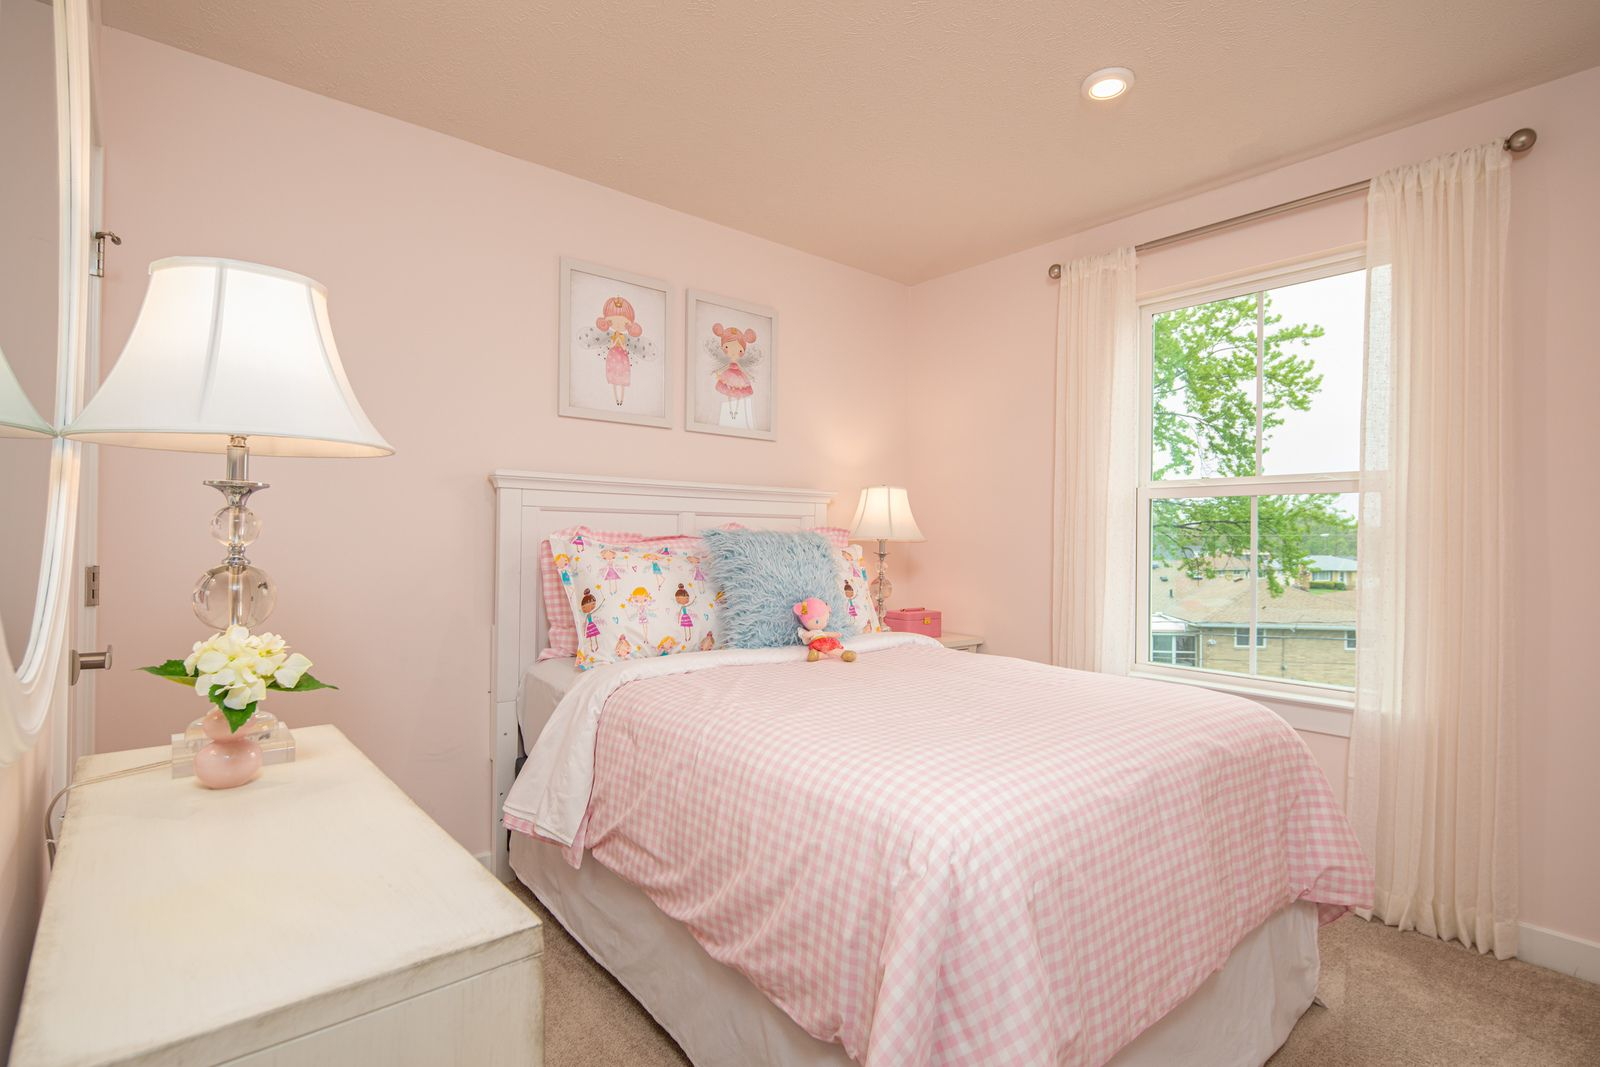 Bedroom featured in the Allegheny By Ryan Homes in Charlotte, NC